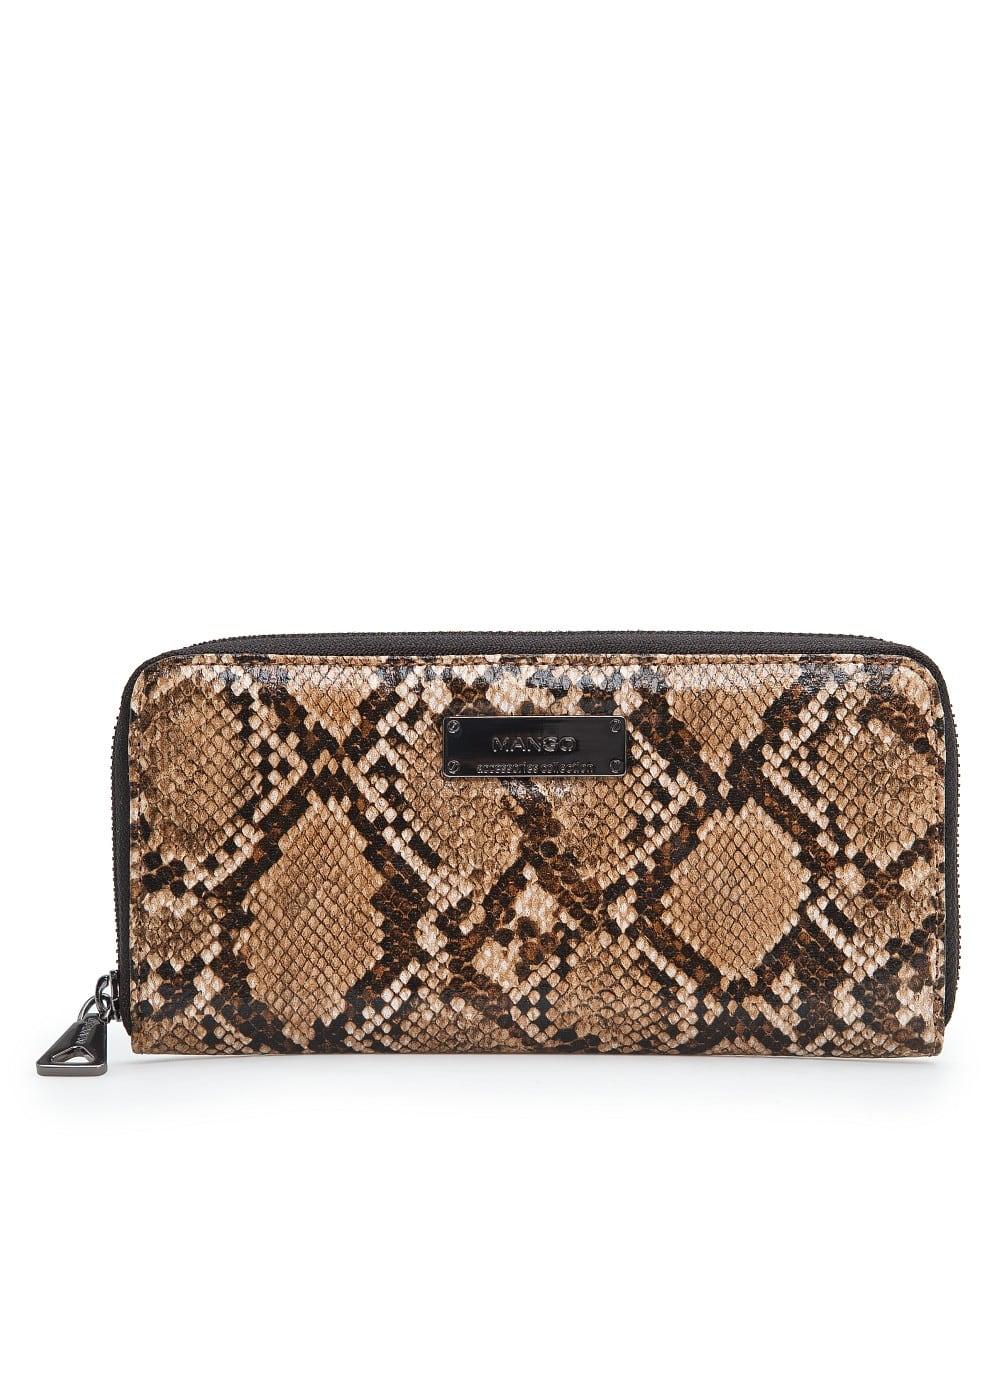 Snakeskin effect wallet